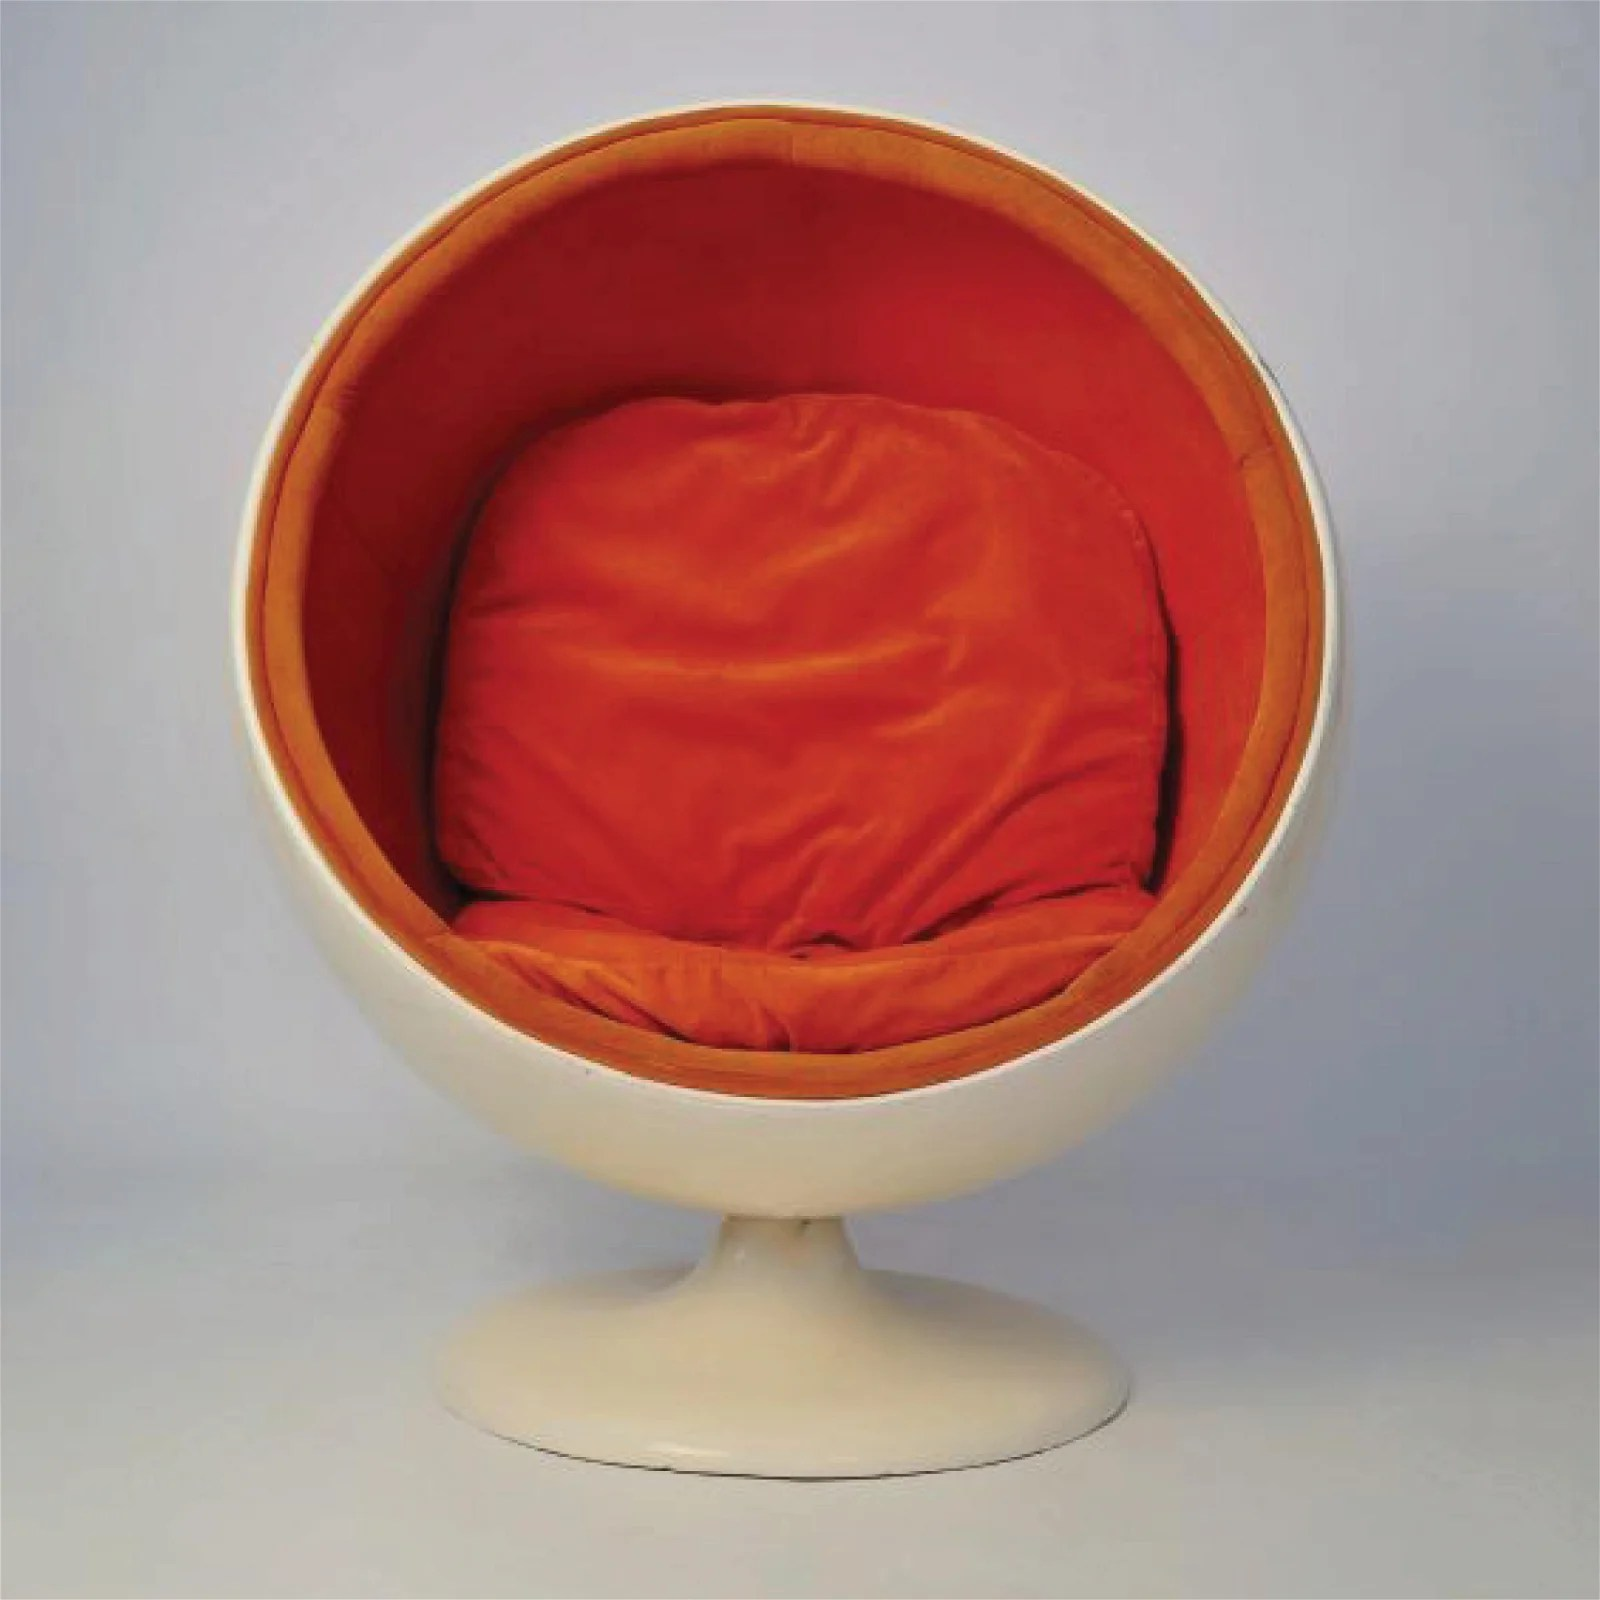 Ball Chair For Auction: Kids Ball Chair (#1274) On Apr 10, 2021 | Leon Gallery In Philippines